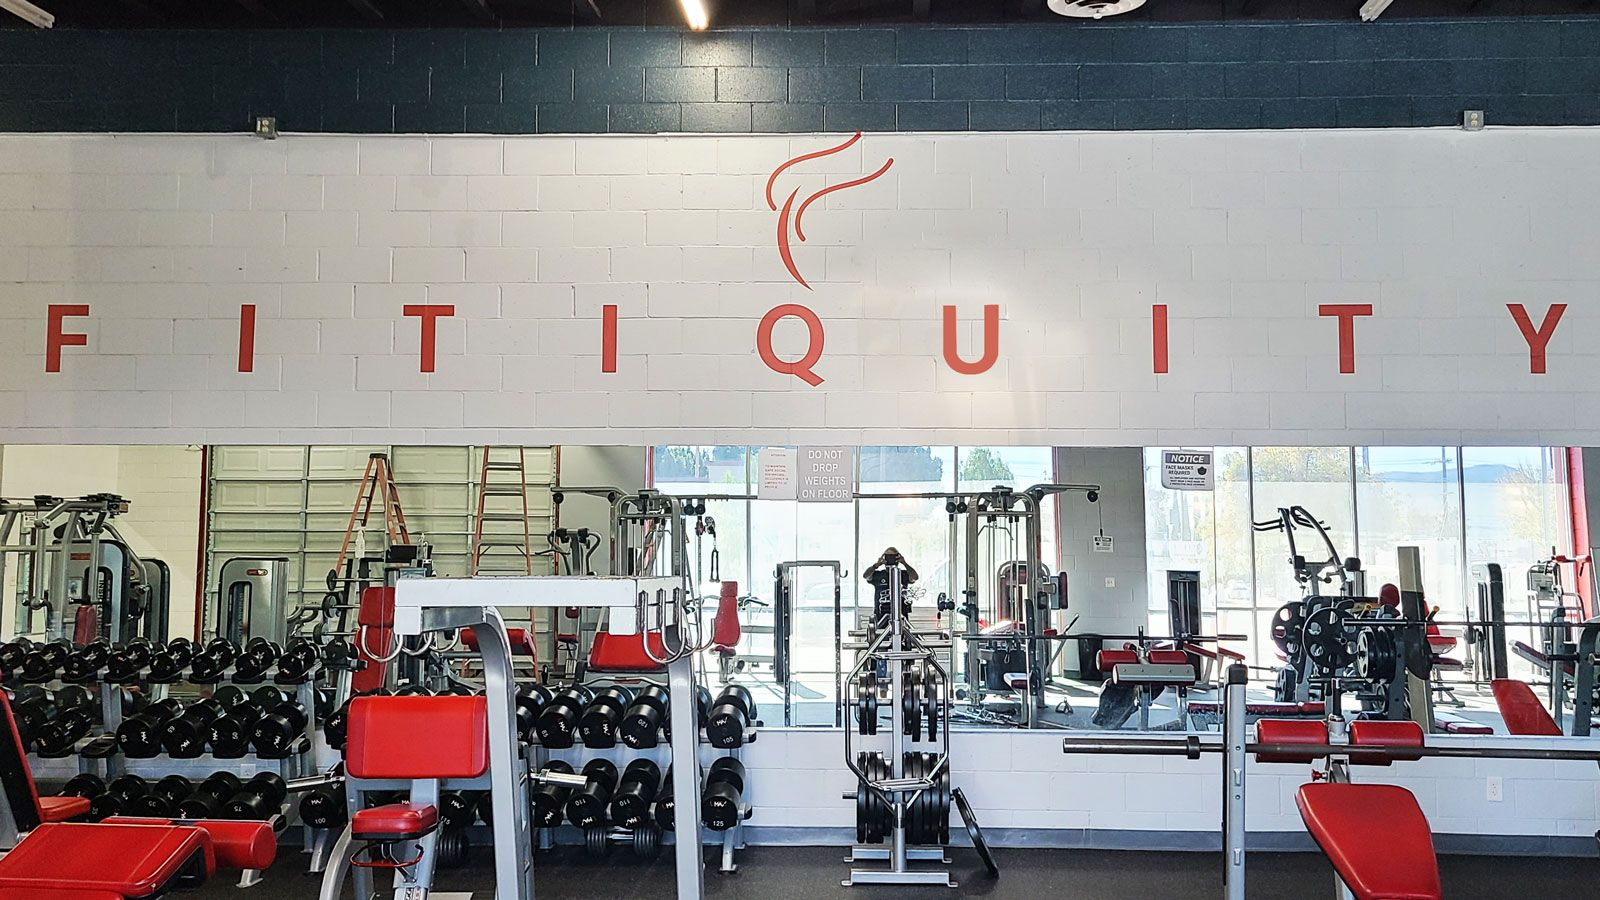 Fitquity gym vinyl lettering